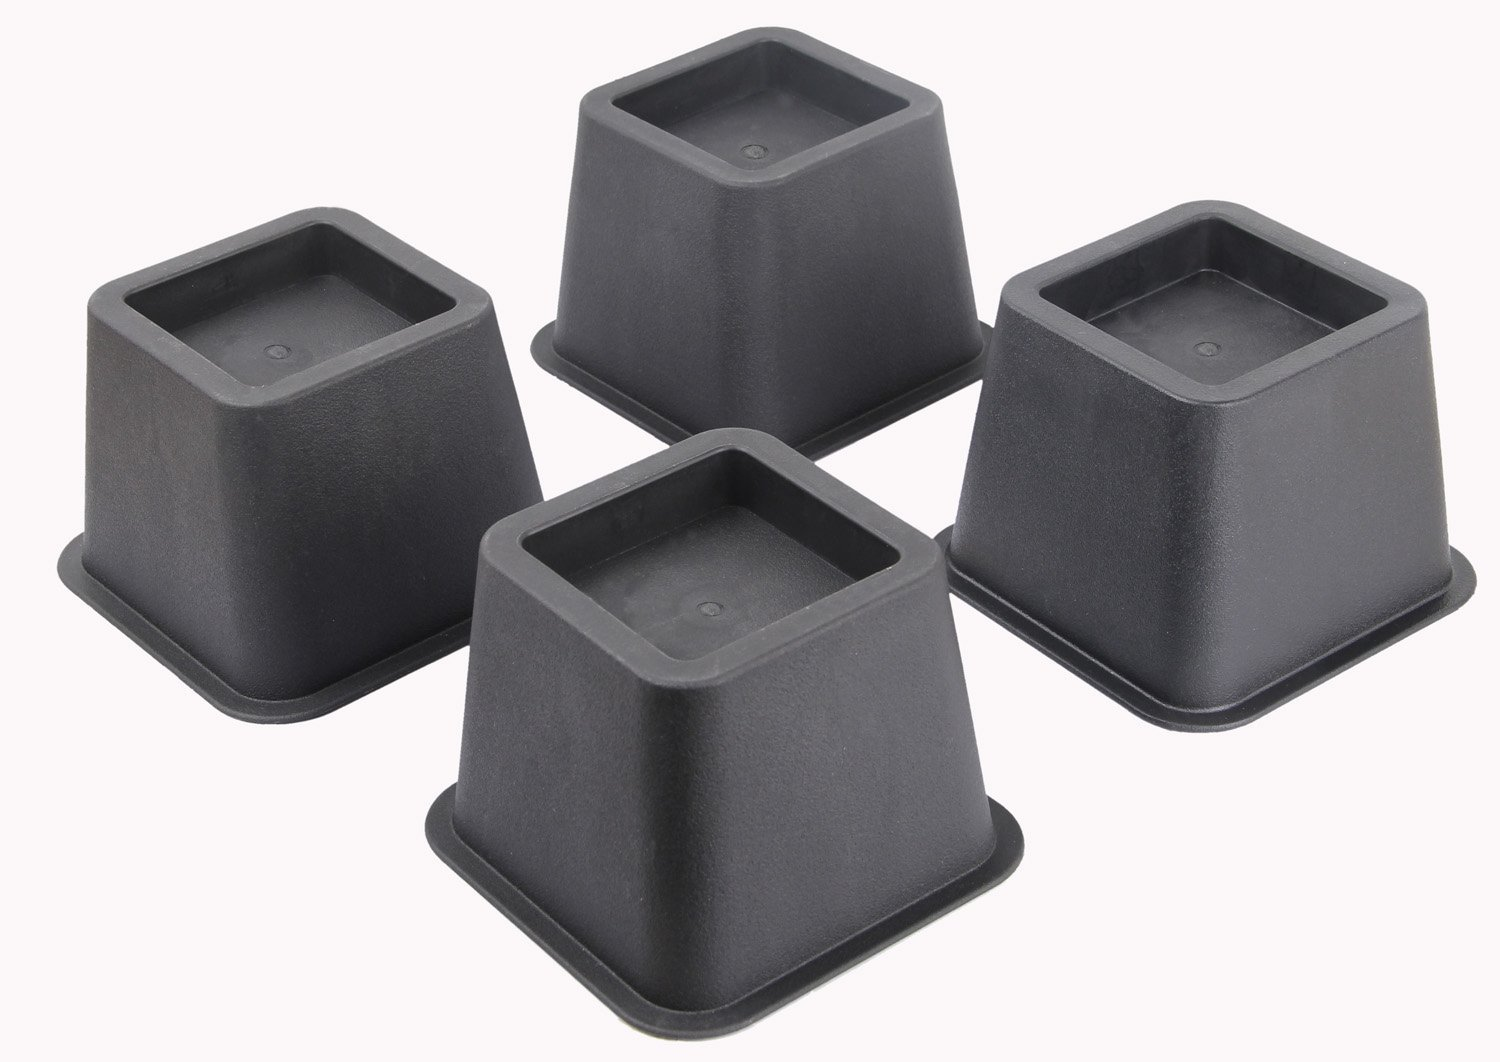 Ryehaliligear Easygoing 4-Pack 3 Inch Height Risers.